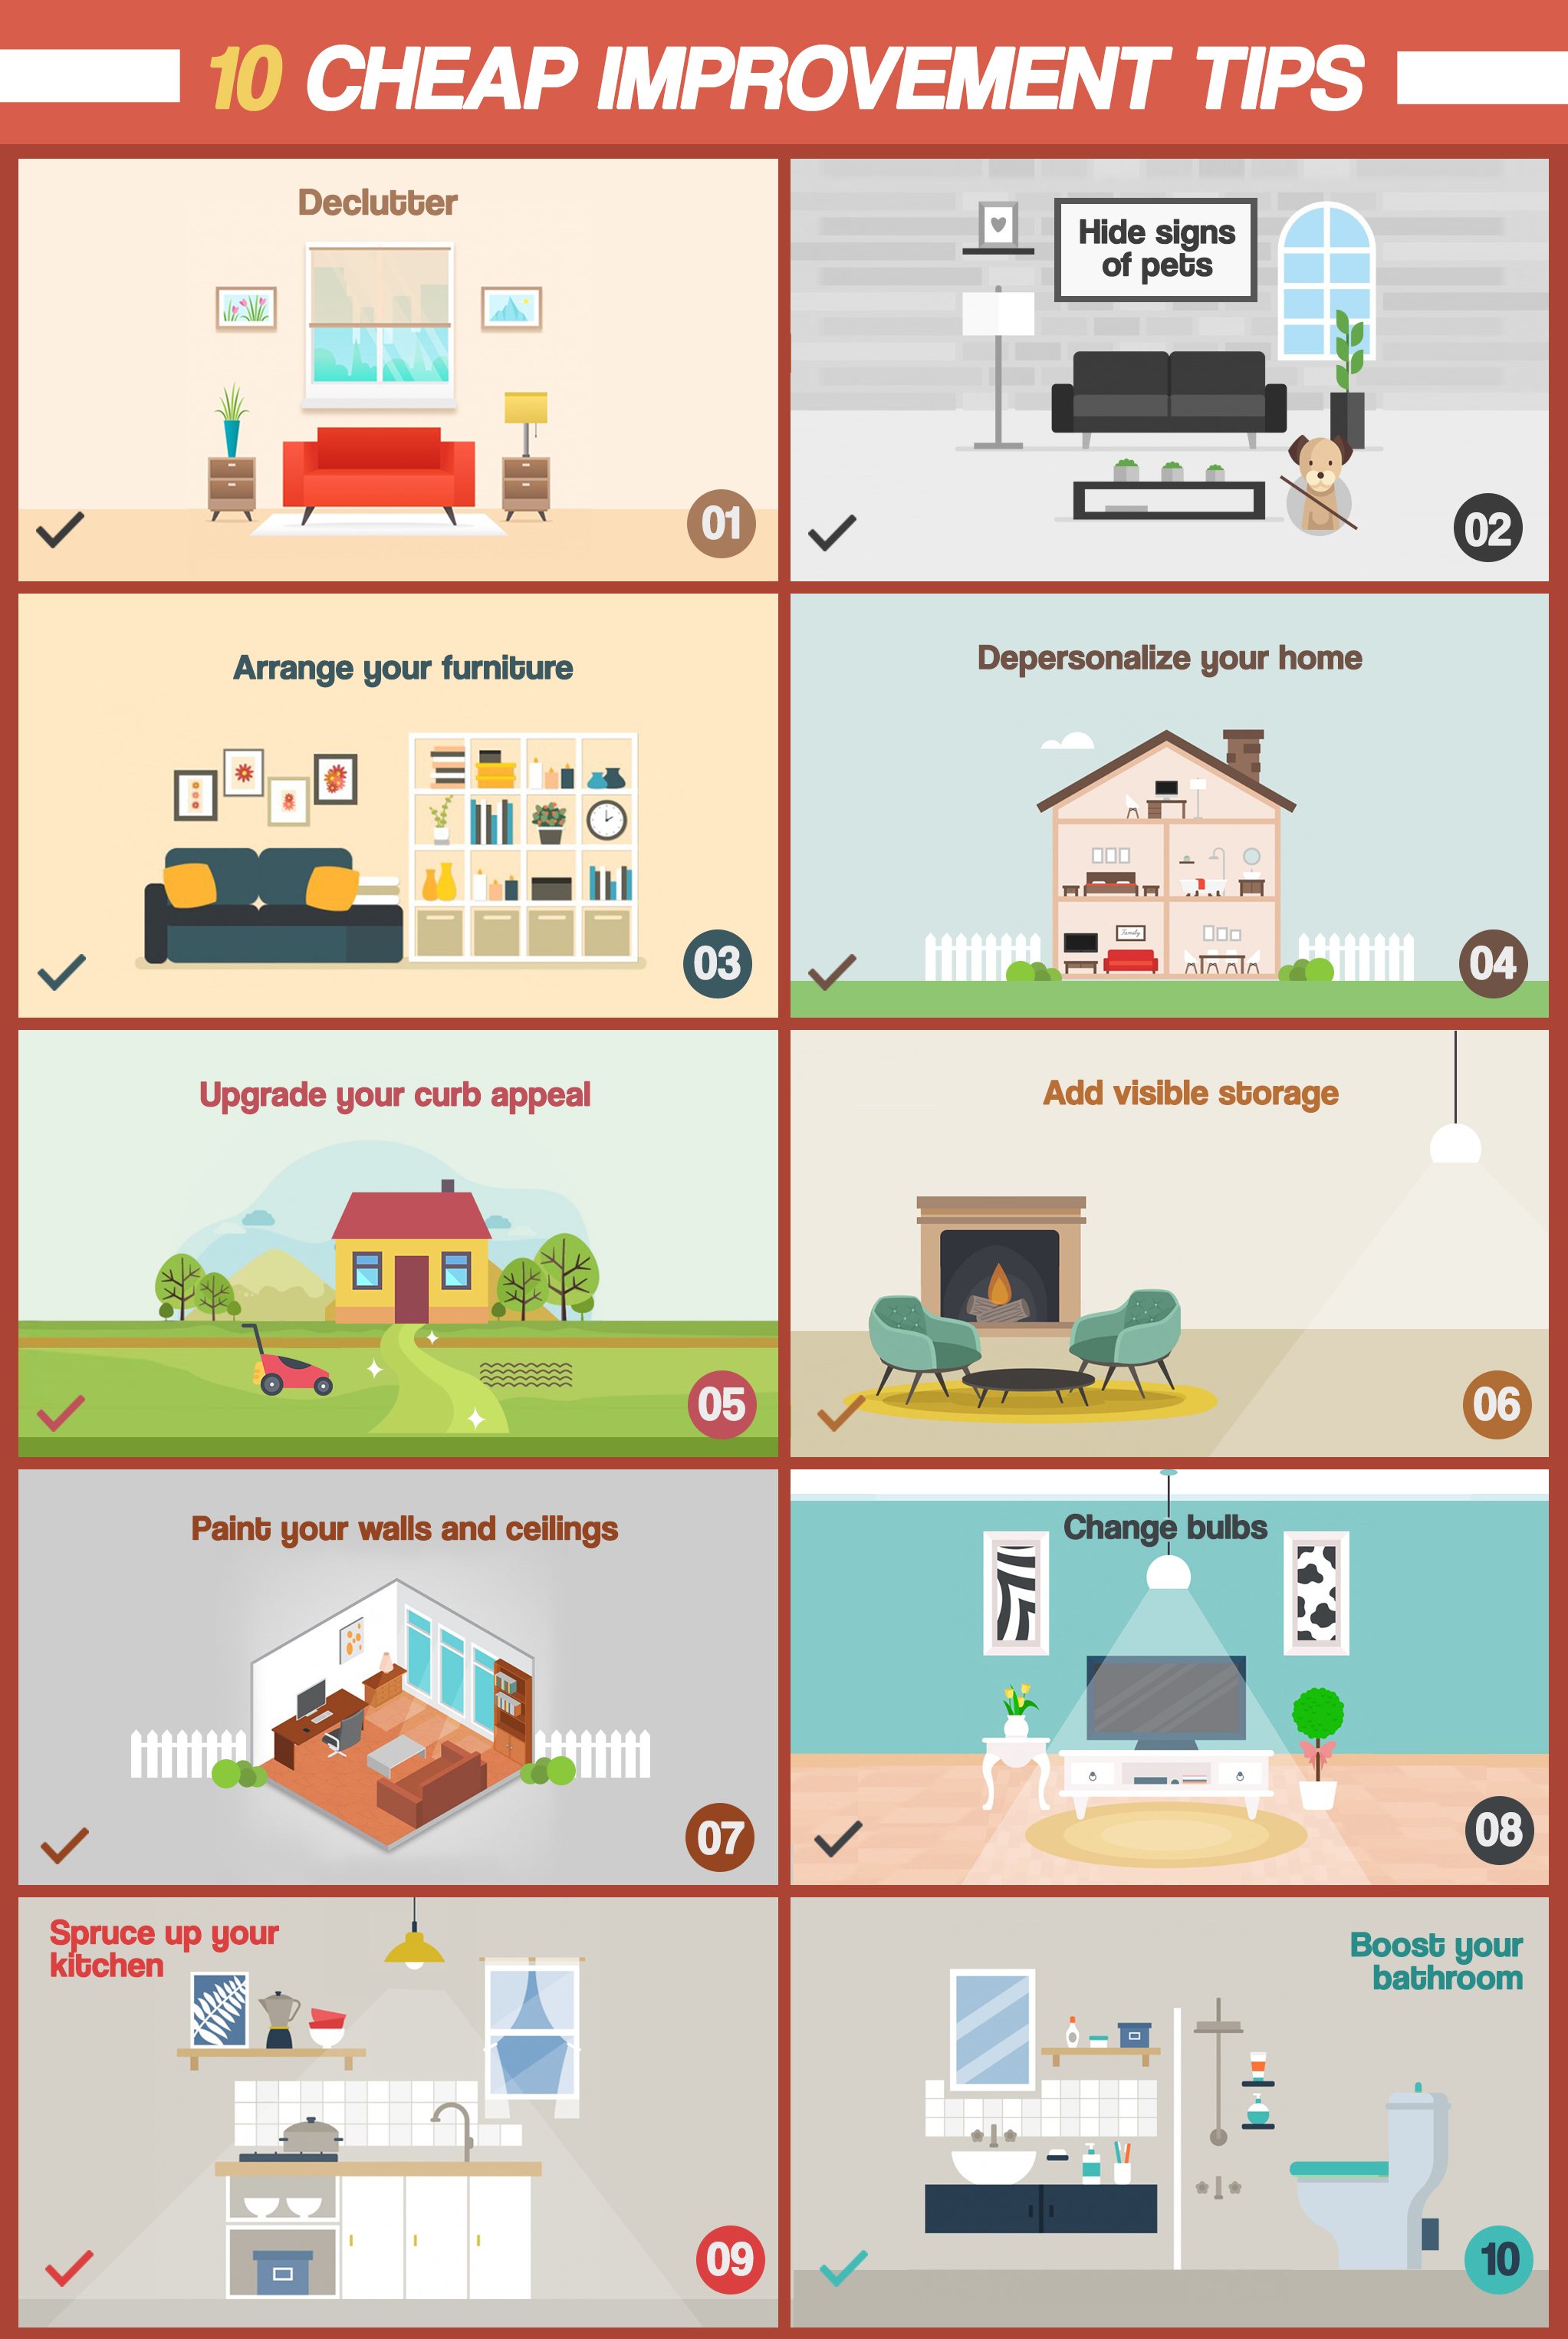 Sell Your House Fast 10 Cheap Home Improvement Tips - new order.jpg